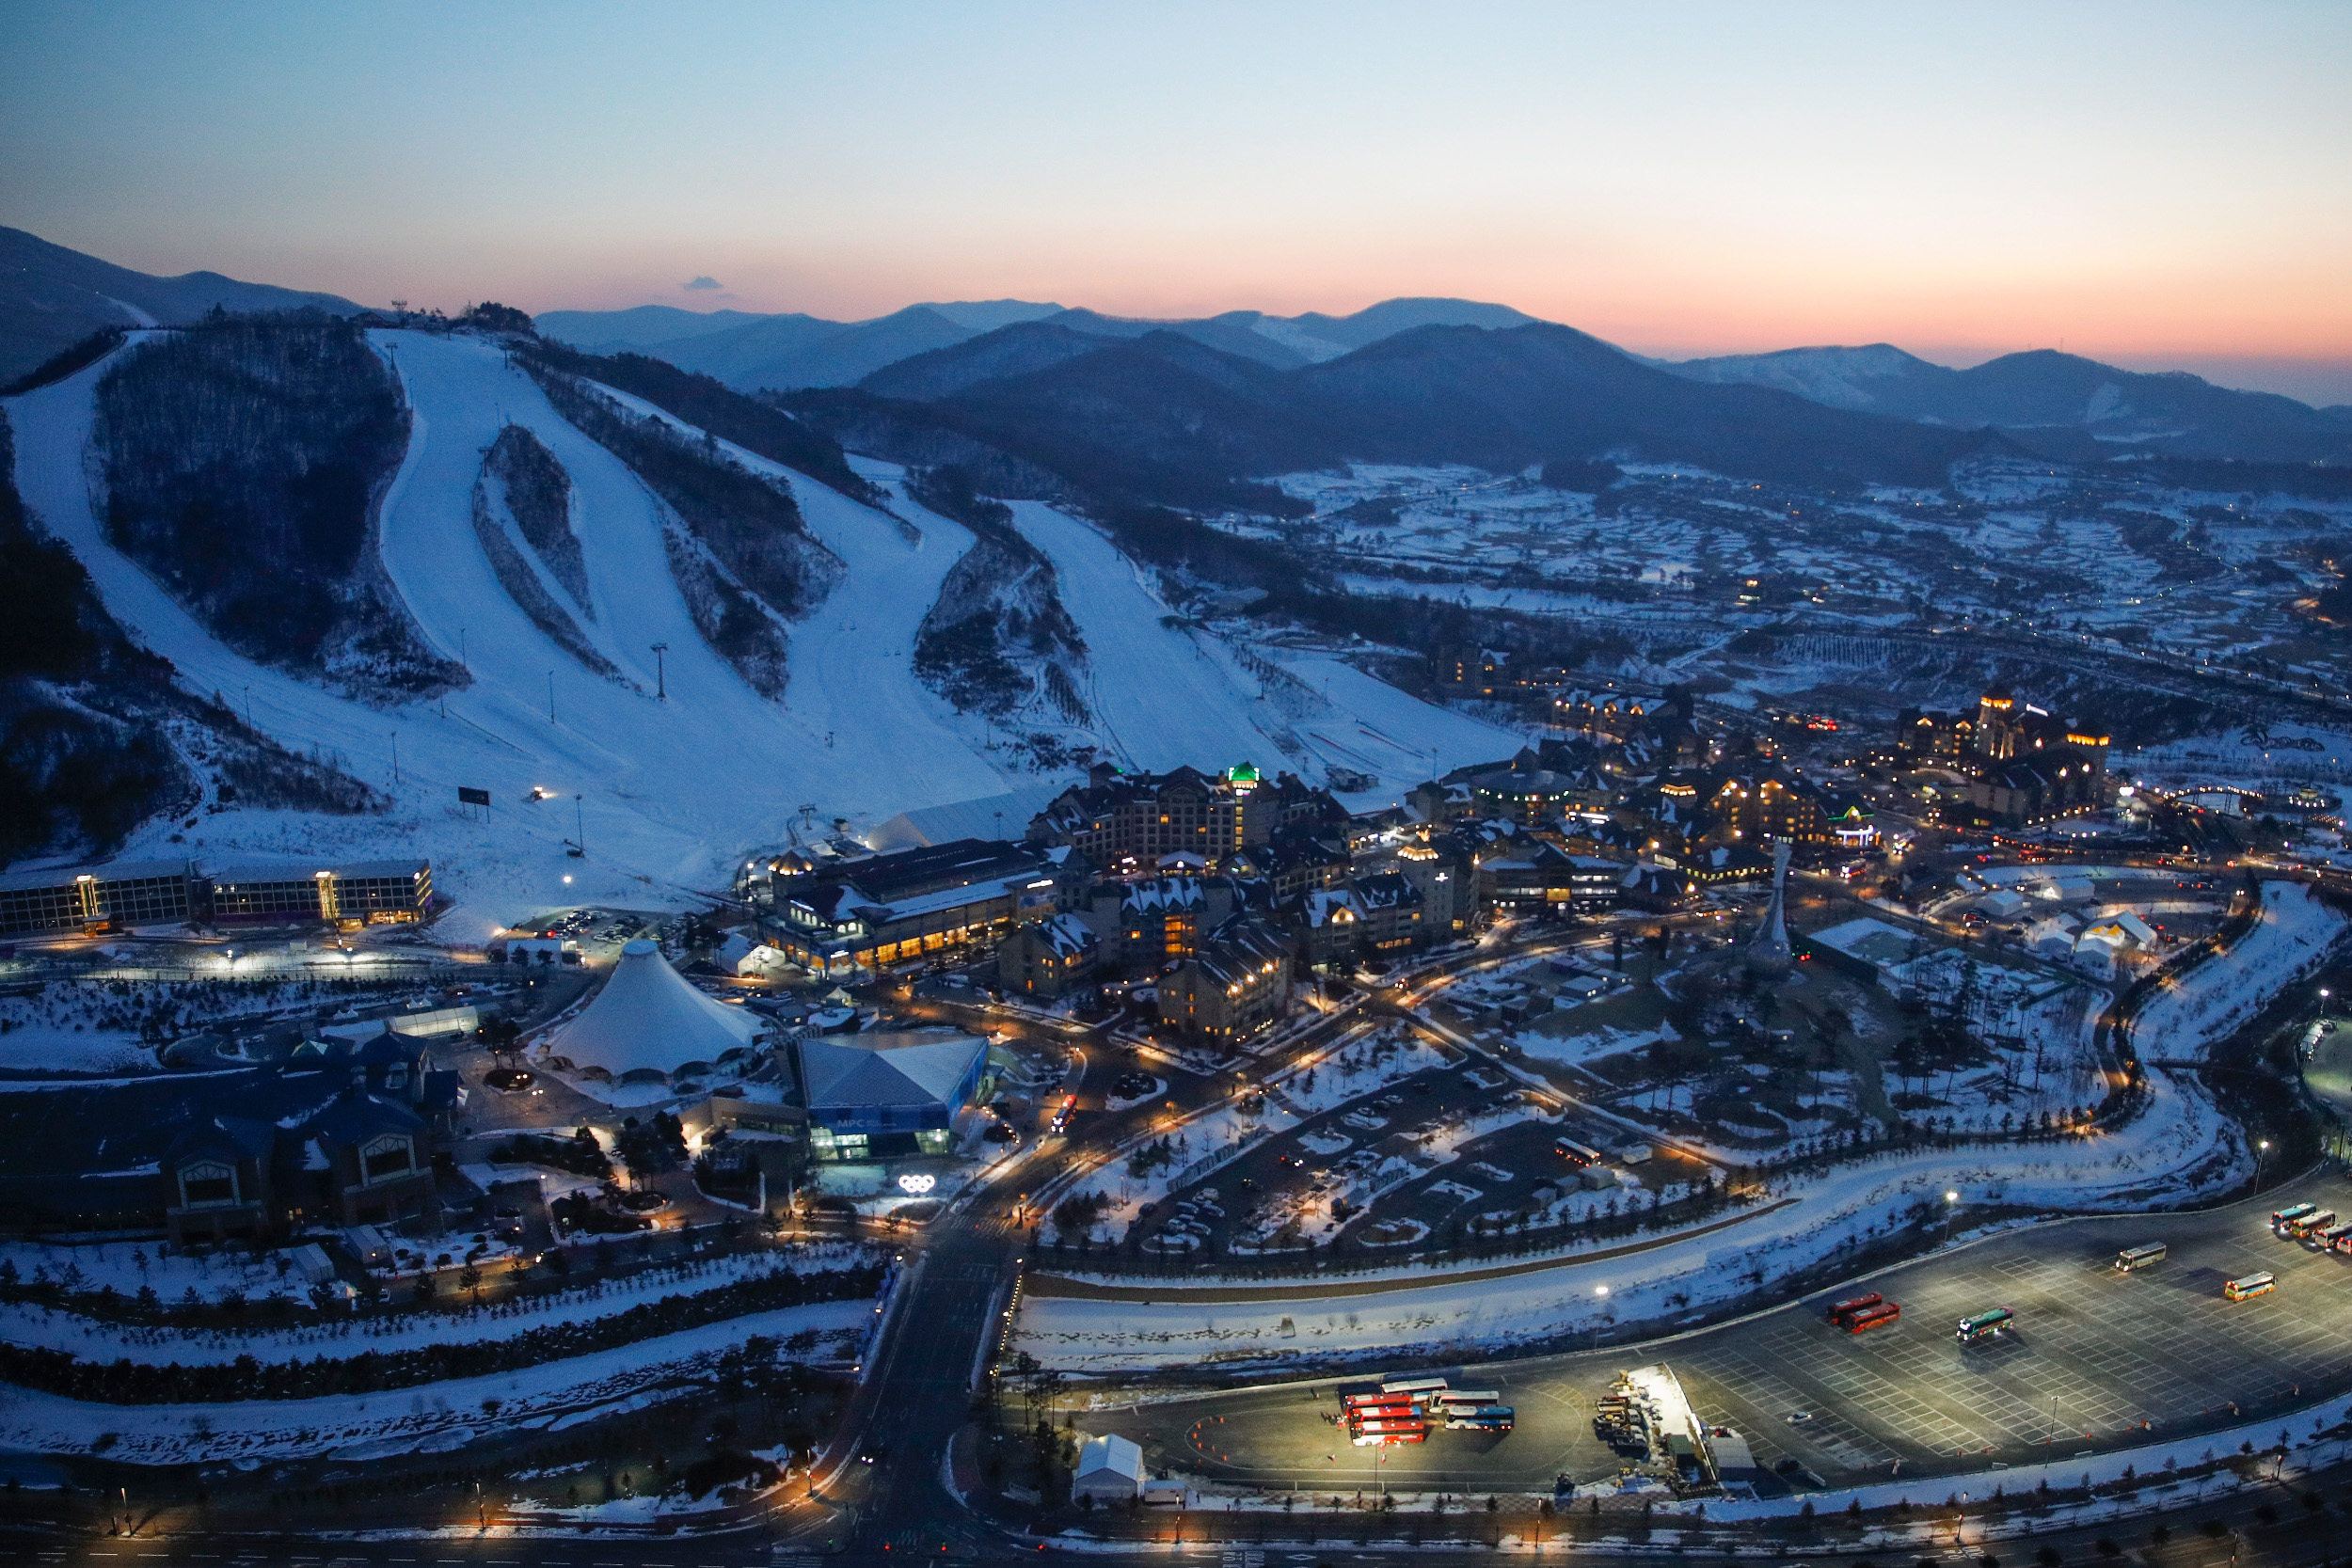 The Alpensia Complex is one of the main hubs of activity, housing the biathlon, cross-country and sliding centres.